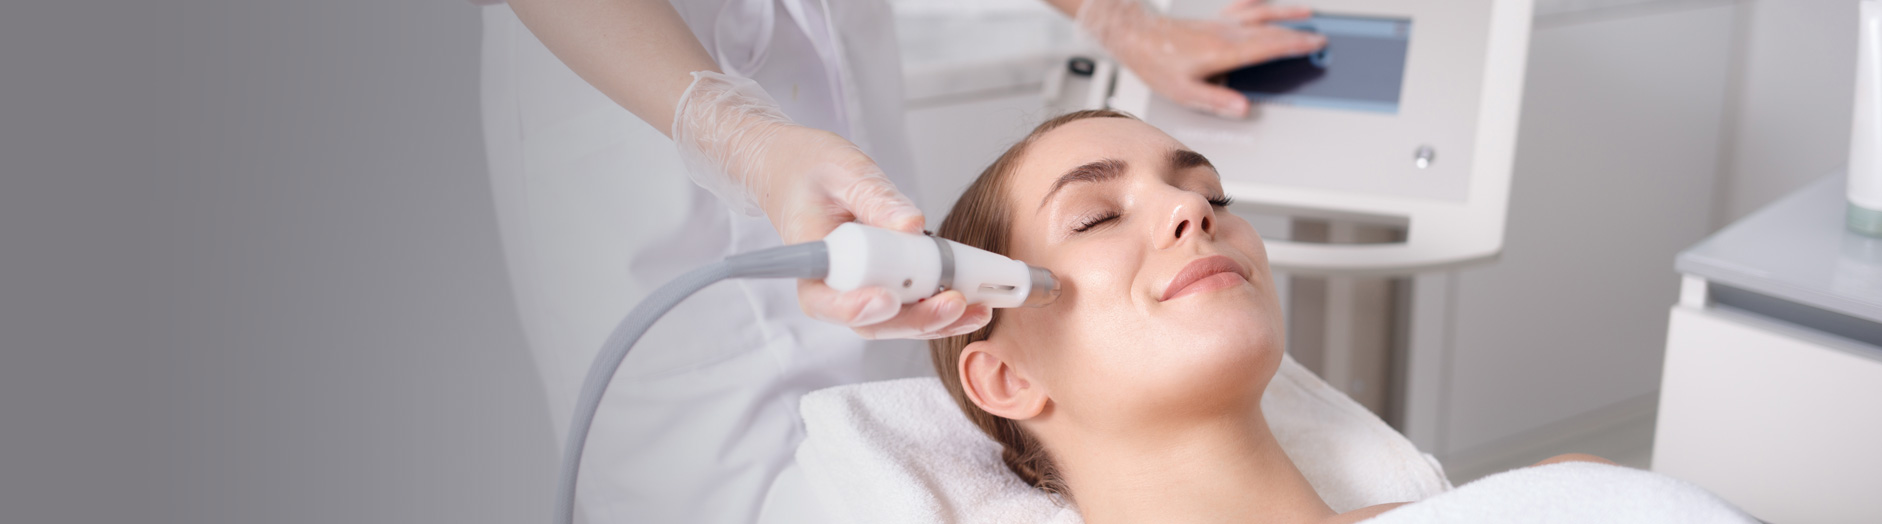 Skin rejuvenation: the various treatment options for younger looking